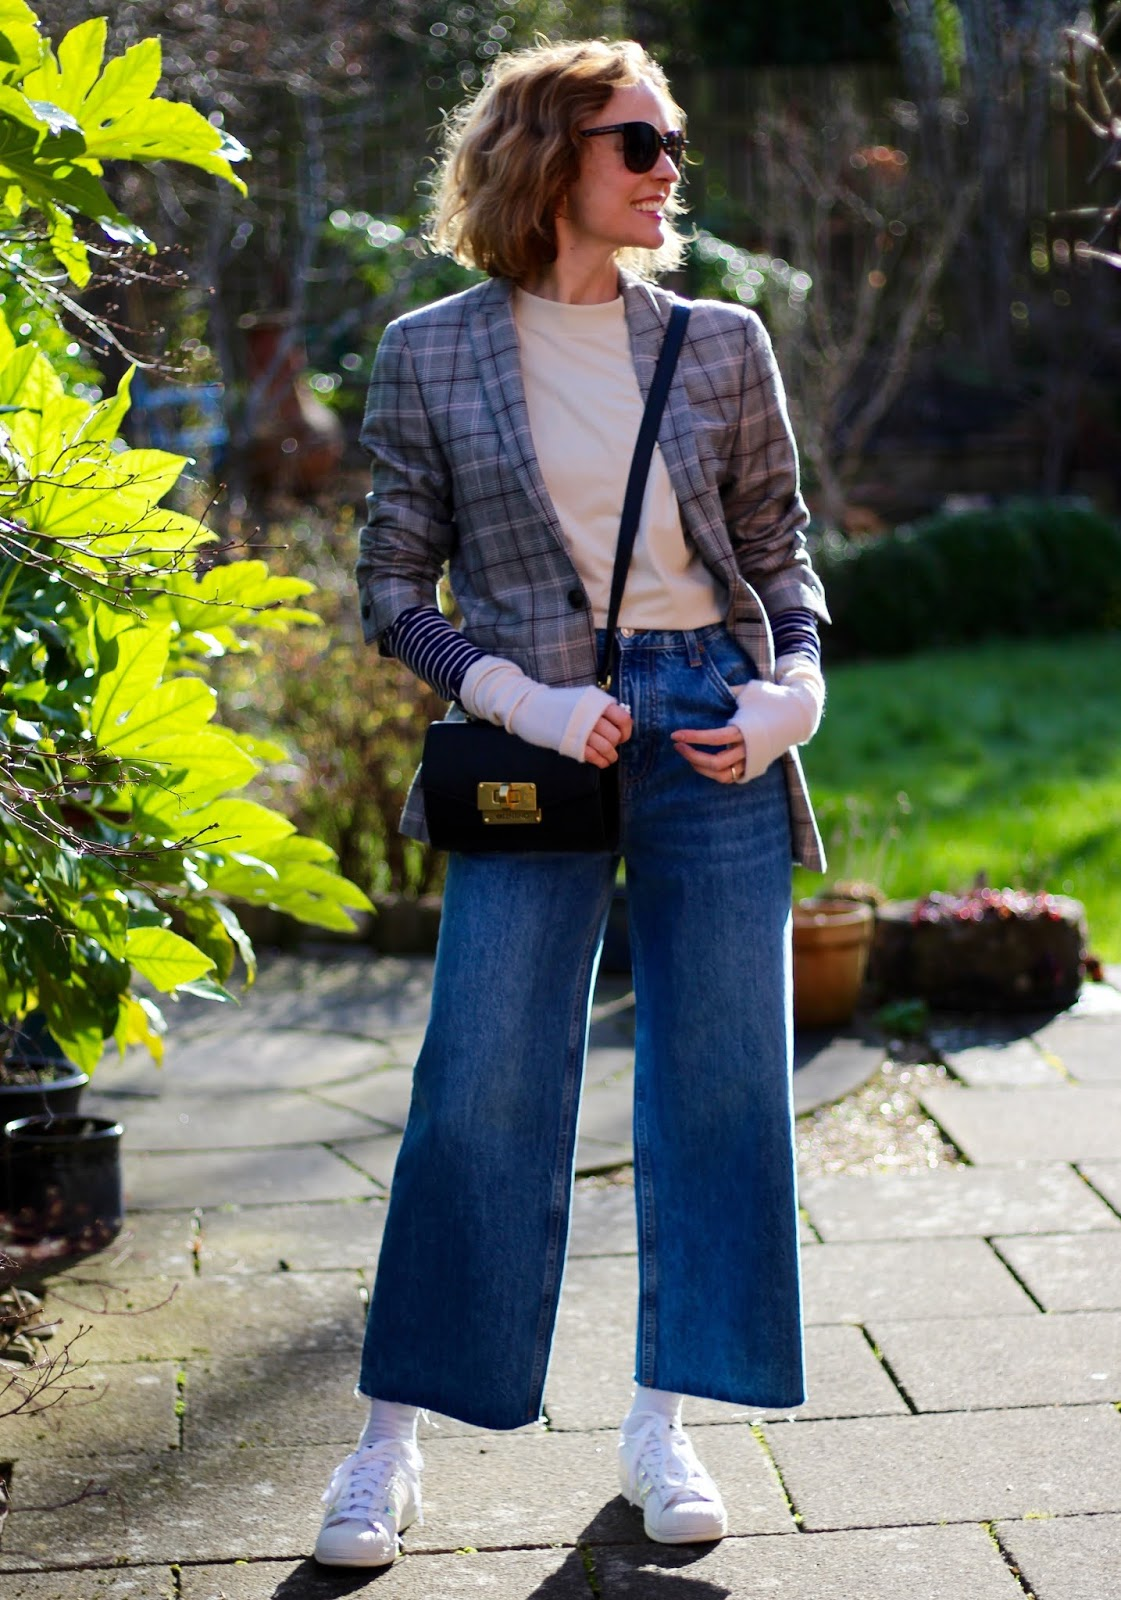 Steal Her Style | Spring blazer and wide jeans outfit | Fake Fabulous